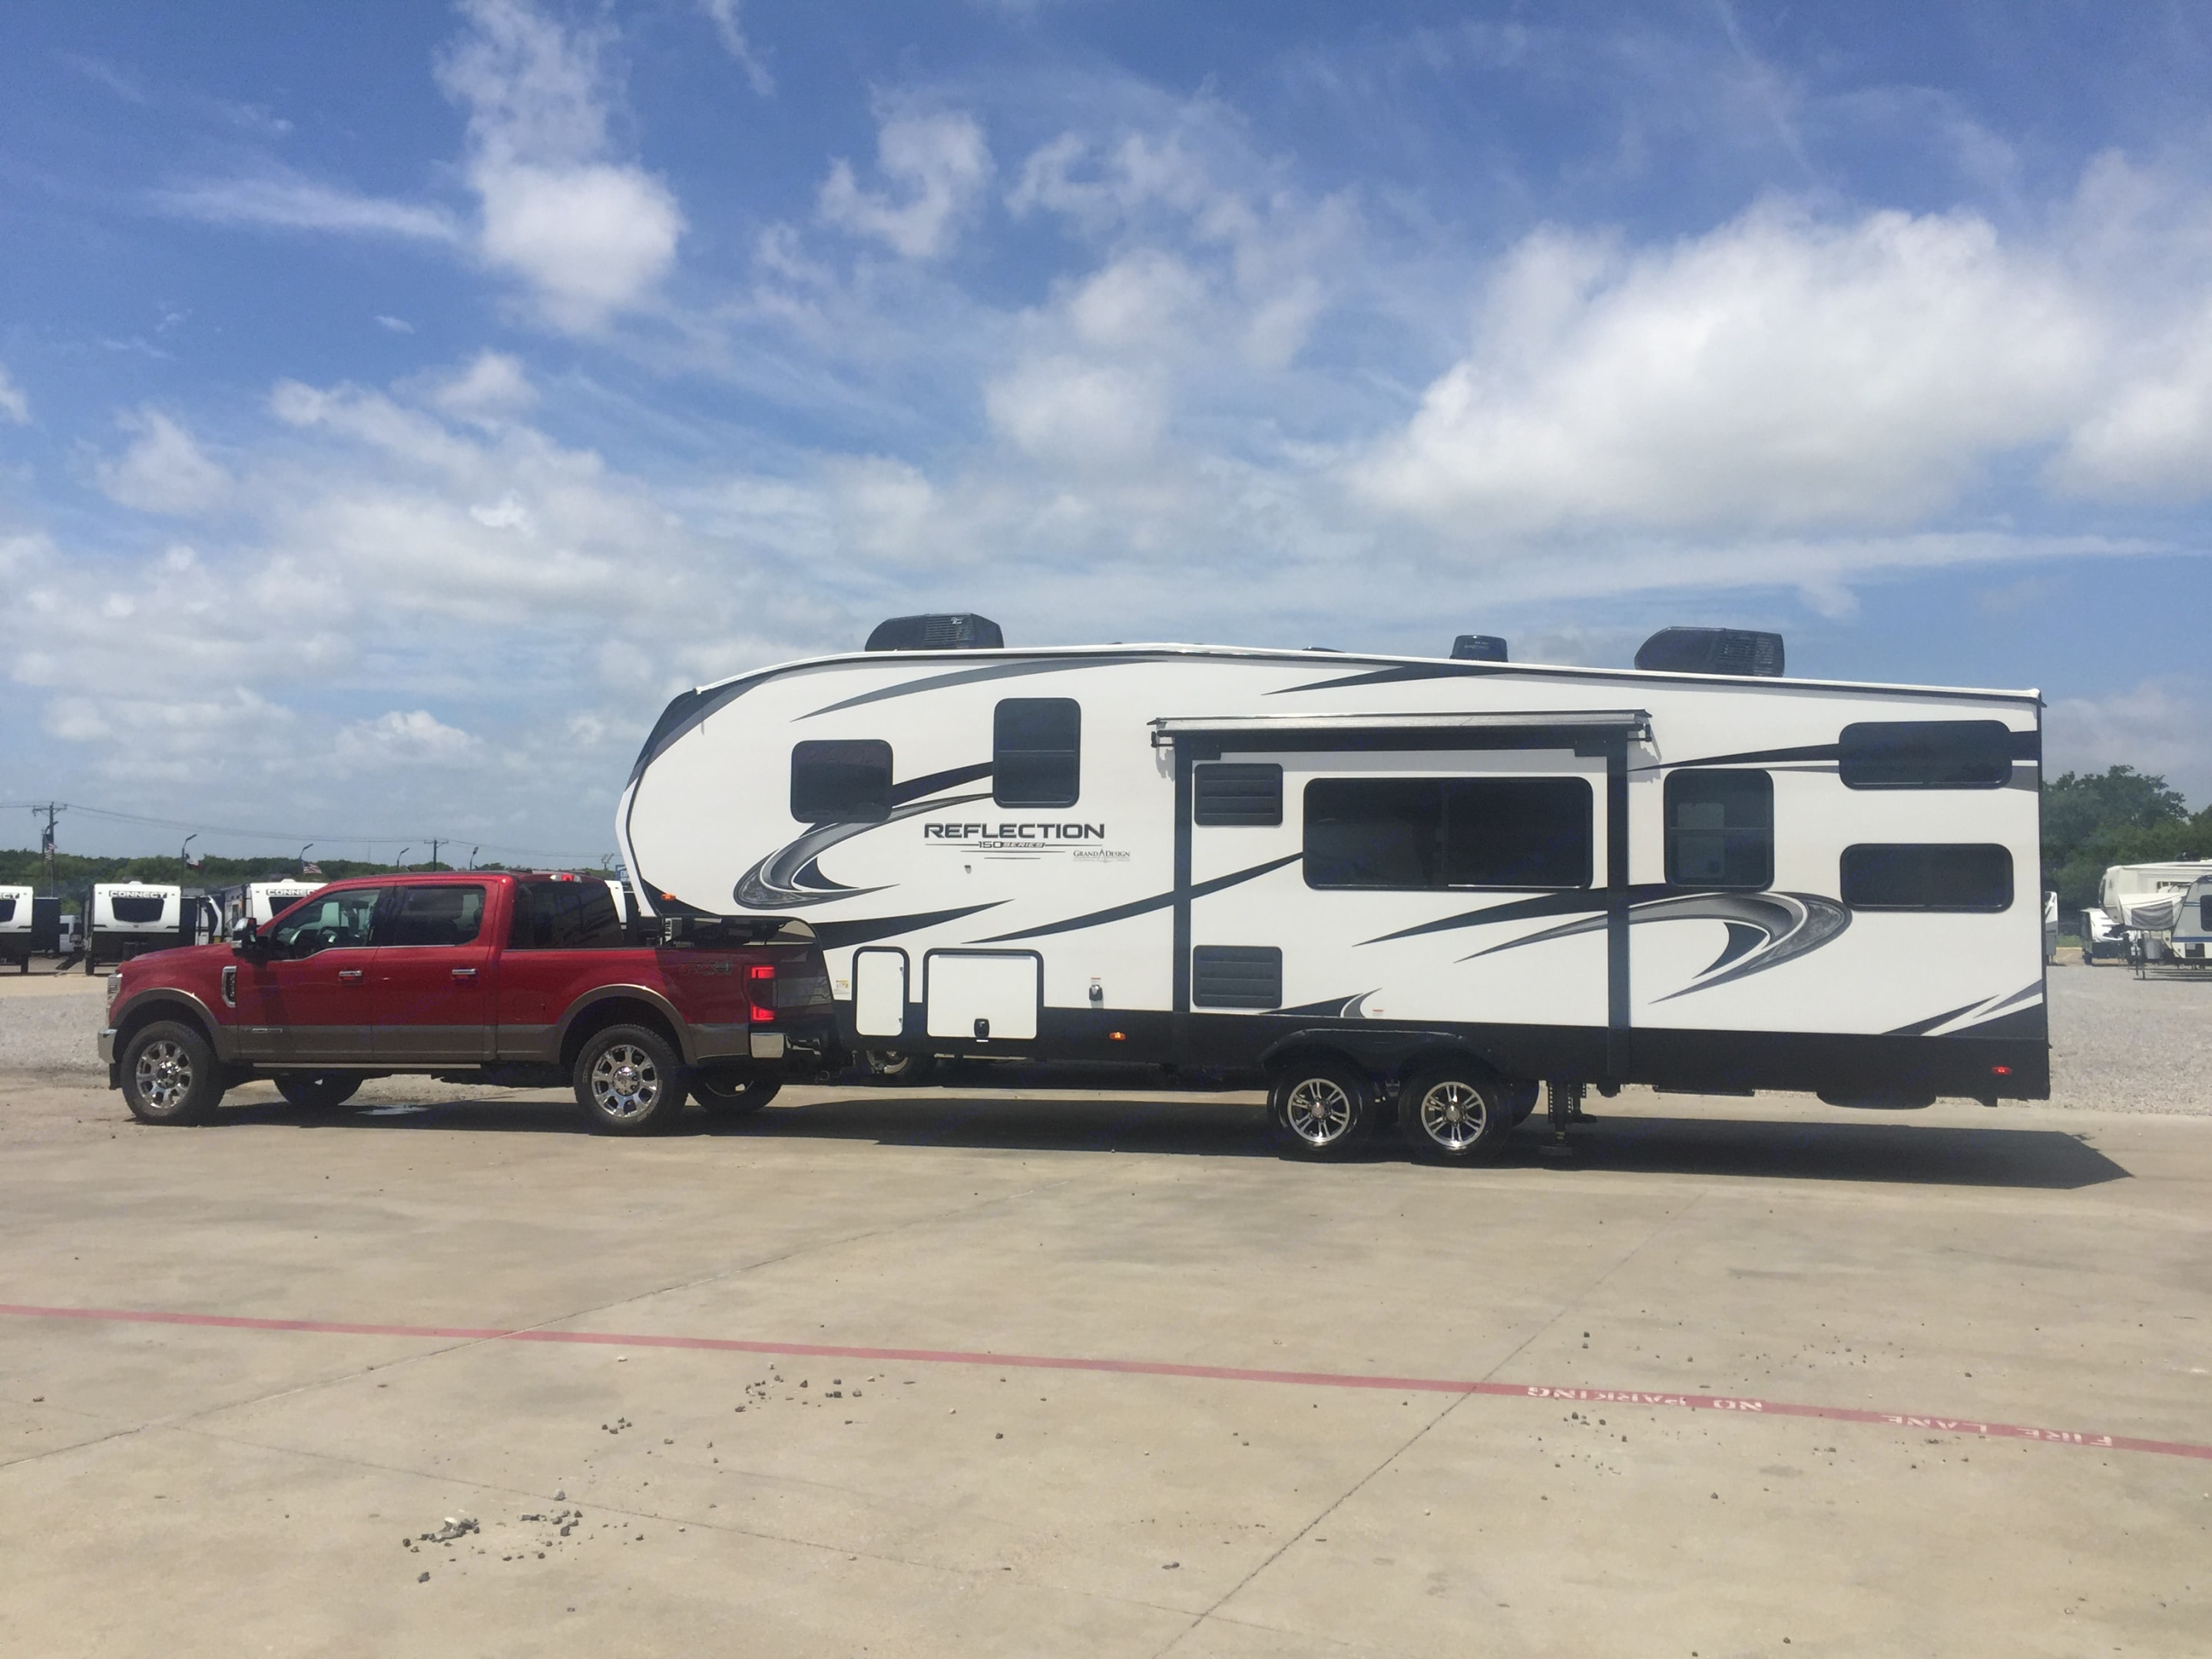 Reflection 150 Series towable 5th wheel. Grand Design Reflection 2021